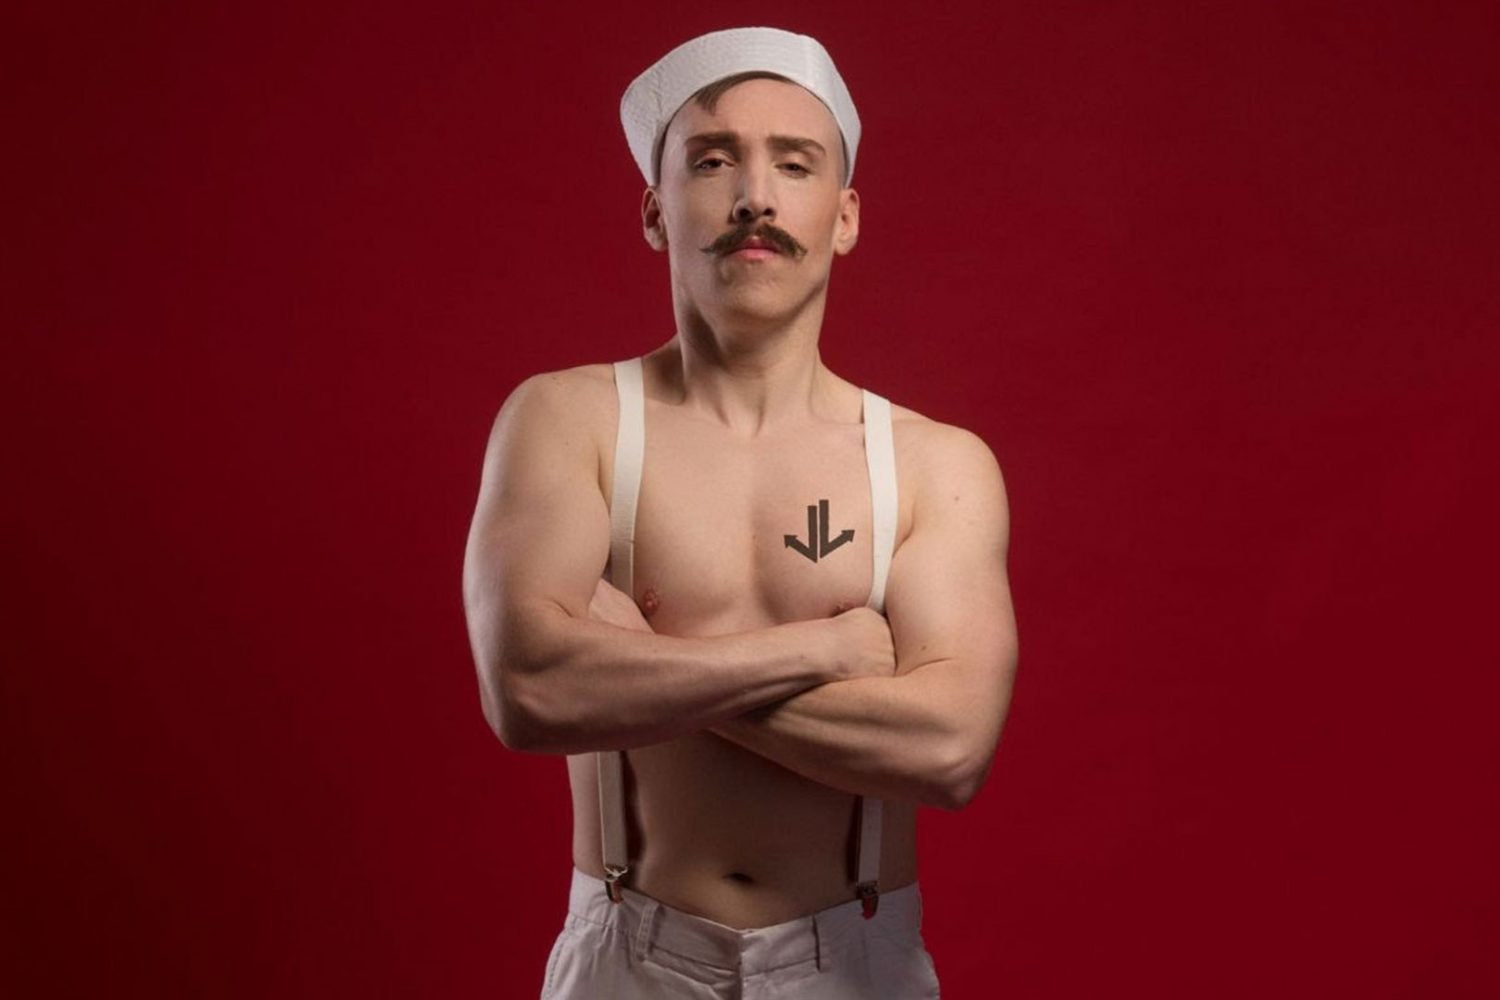 Jamie Lenman has released a brand new video